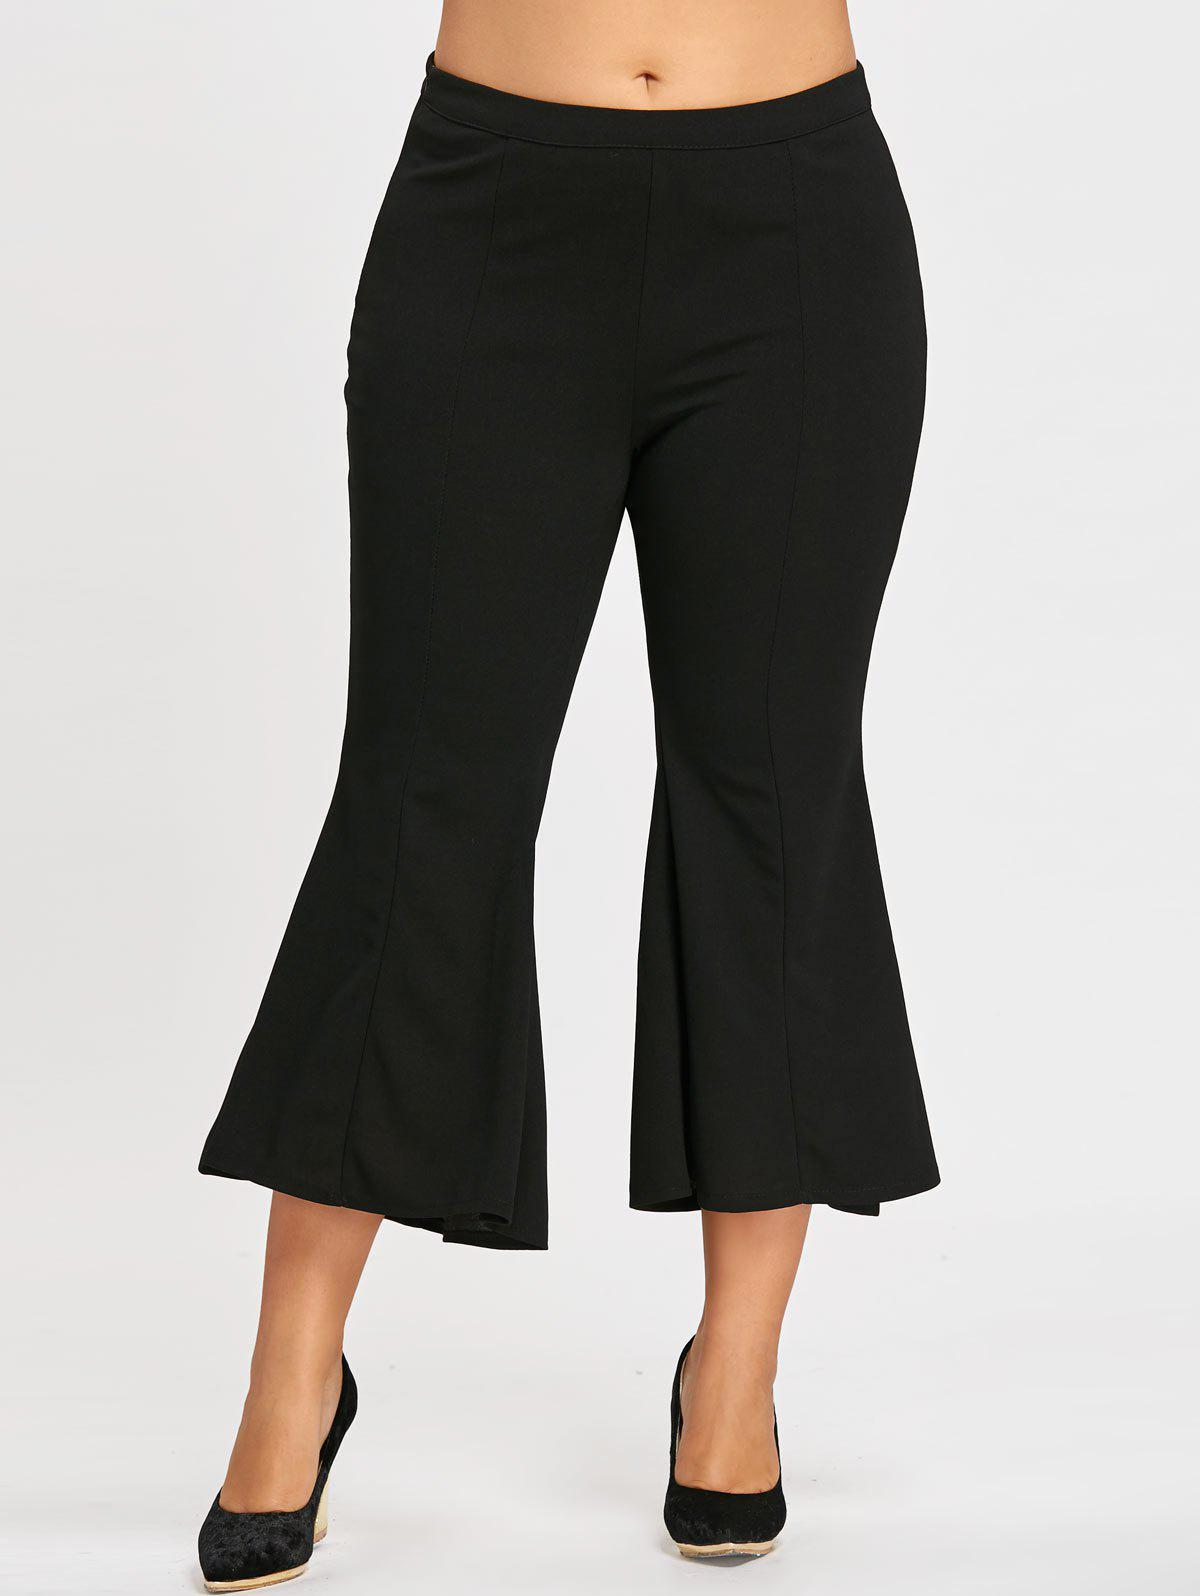 Zipper  High Waist Plus Size Flare PantsWOMEN<br><br>Size: 4XL; Color: BLACK; Style: Fashion; Length: Capri; Material: Polyester; Fit Type: Boot Cut; Waist Type: High; Closure Type: Zipper Fly; Pattern Type: Solid; Pant Style: Flare Pants; Weight: 0.3500kg; Package Contents: 1 x Pants;